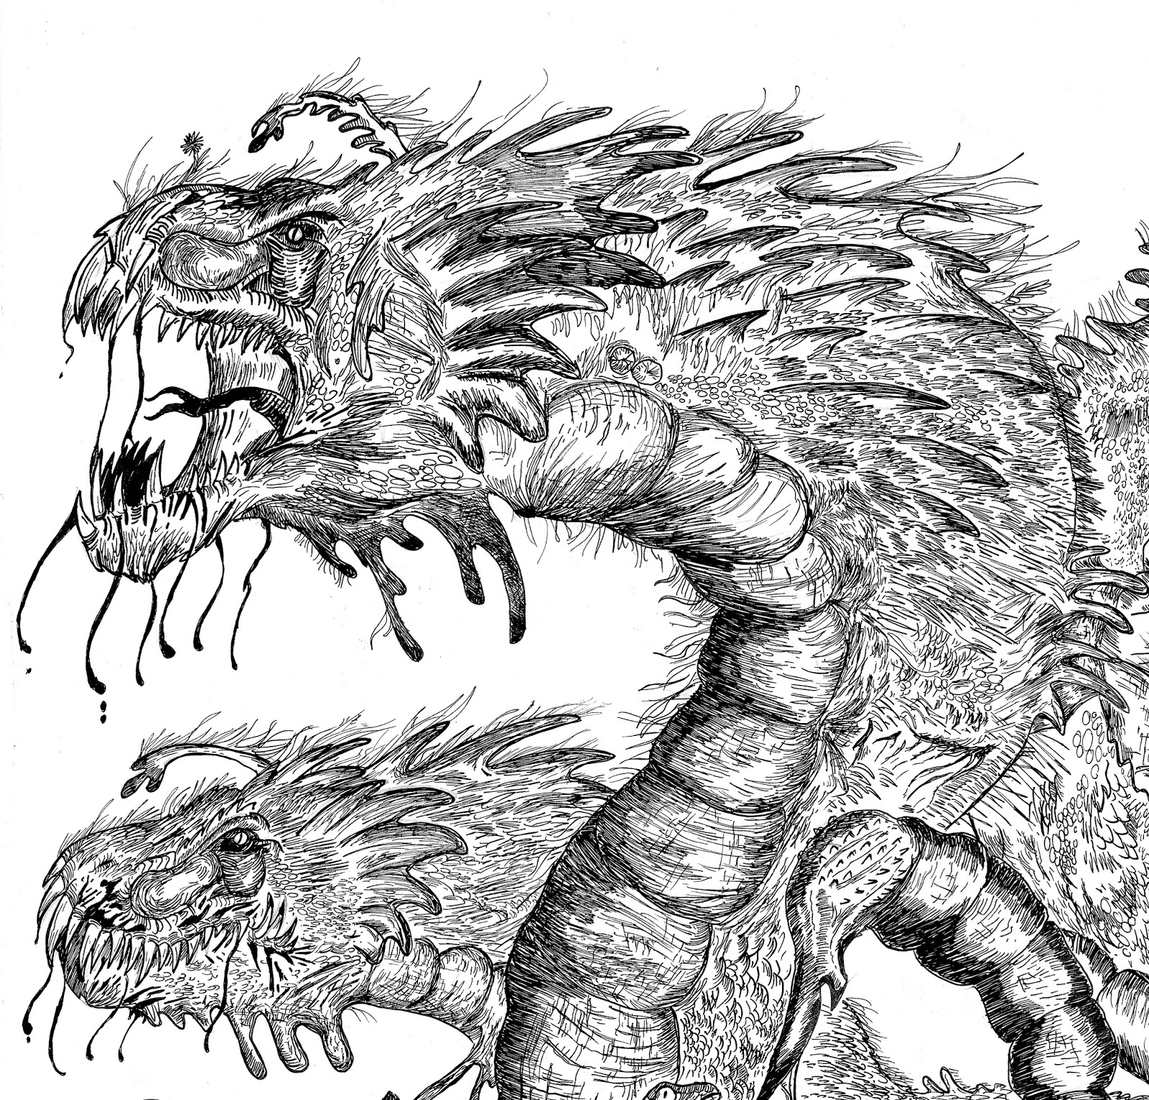 04-Dragon-Heads-Dušan-Krtolica-Душан-Кртолица-Drawing-Animals-and-Insects-from-His-Memory-Bank-www-designstack-co